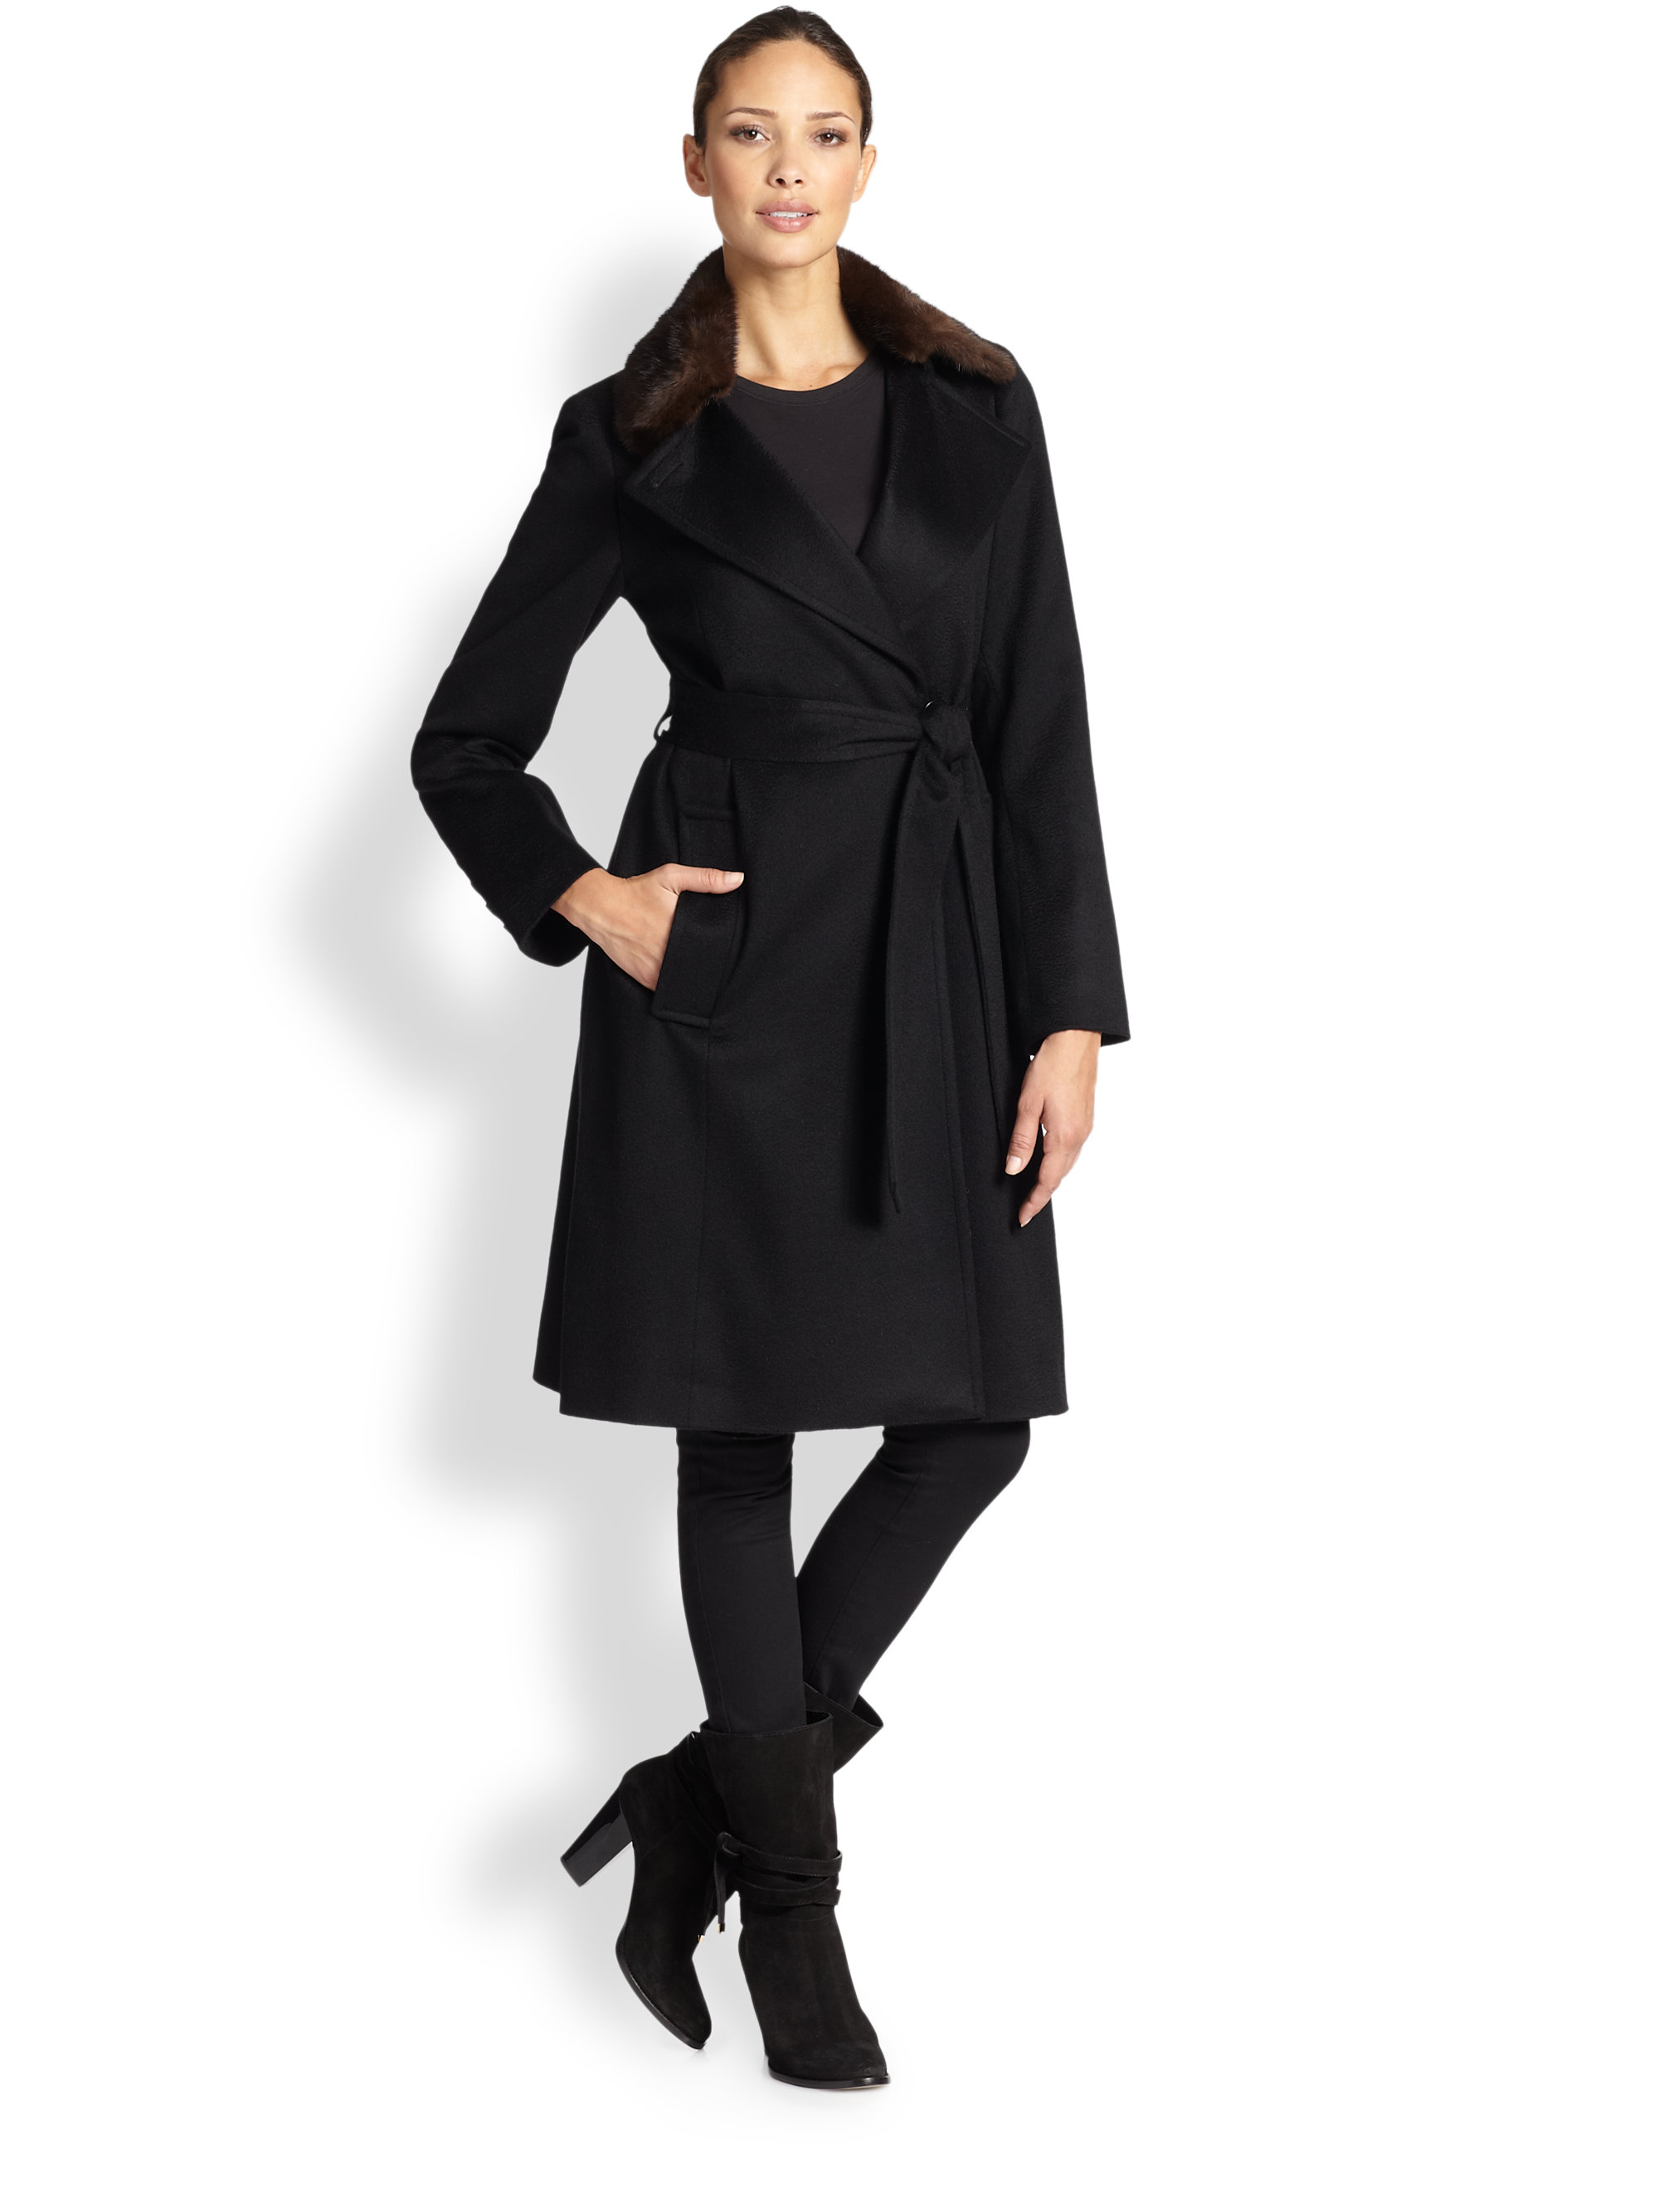 Sofia cashmere Mink-Collar Cashmere Wrap Coat in Black | Lyst